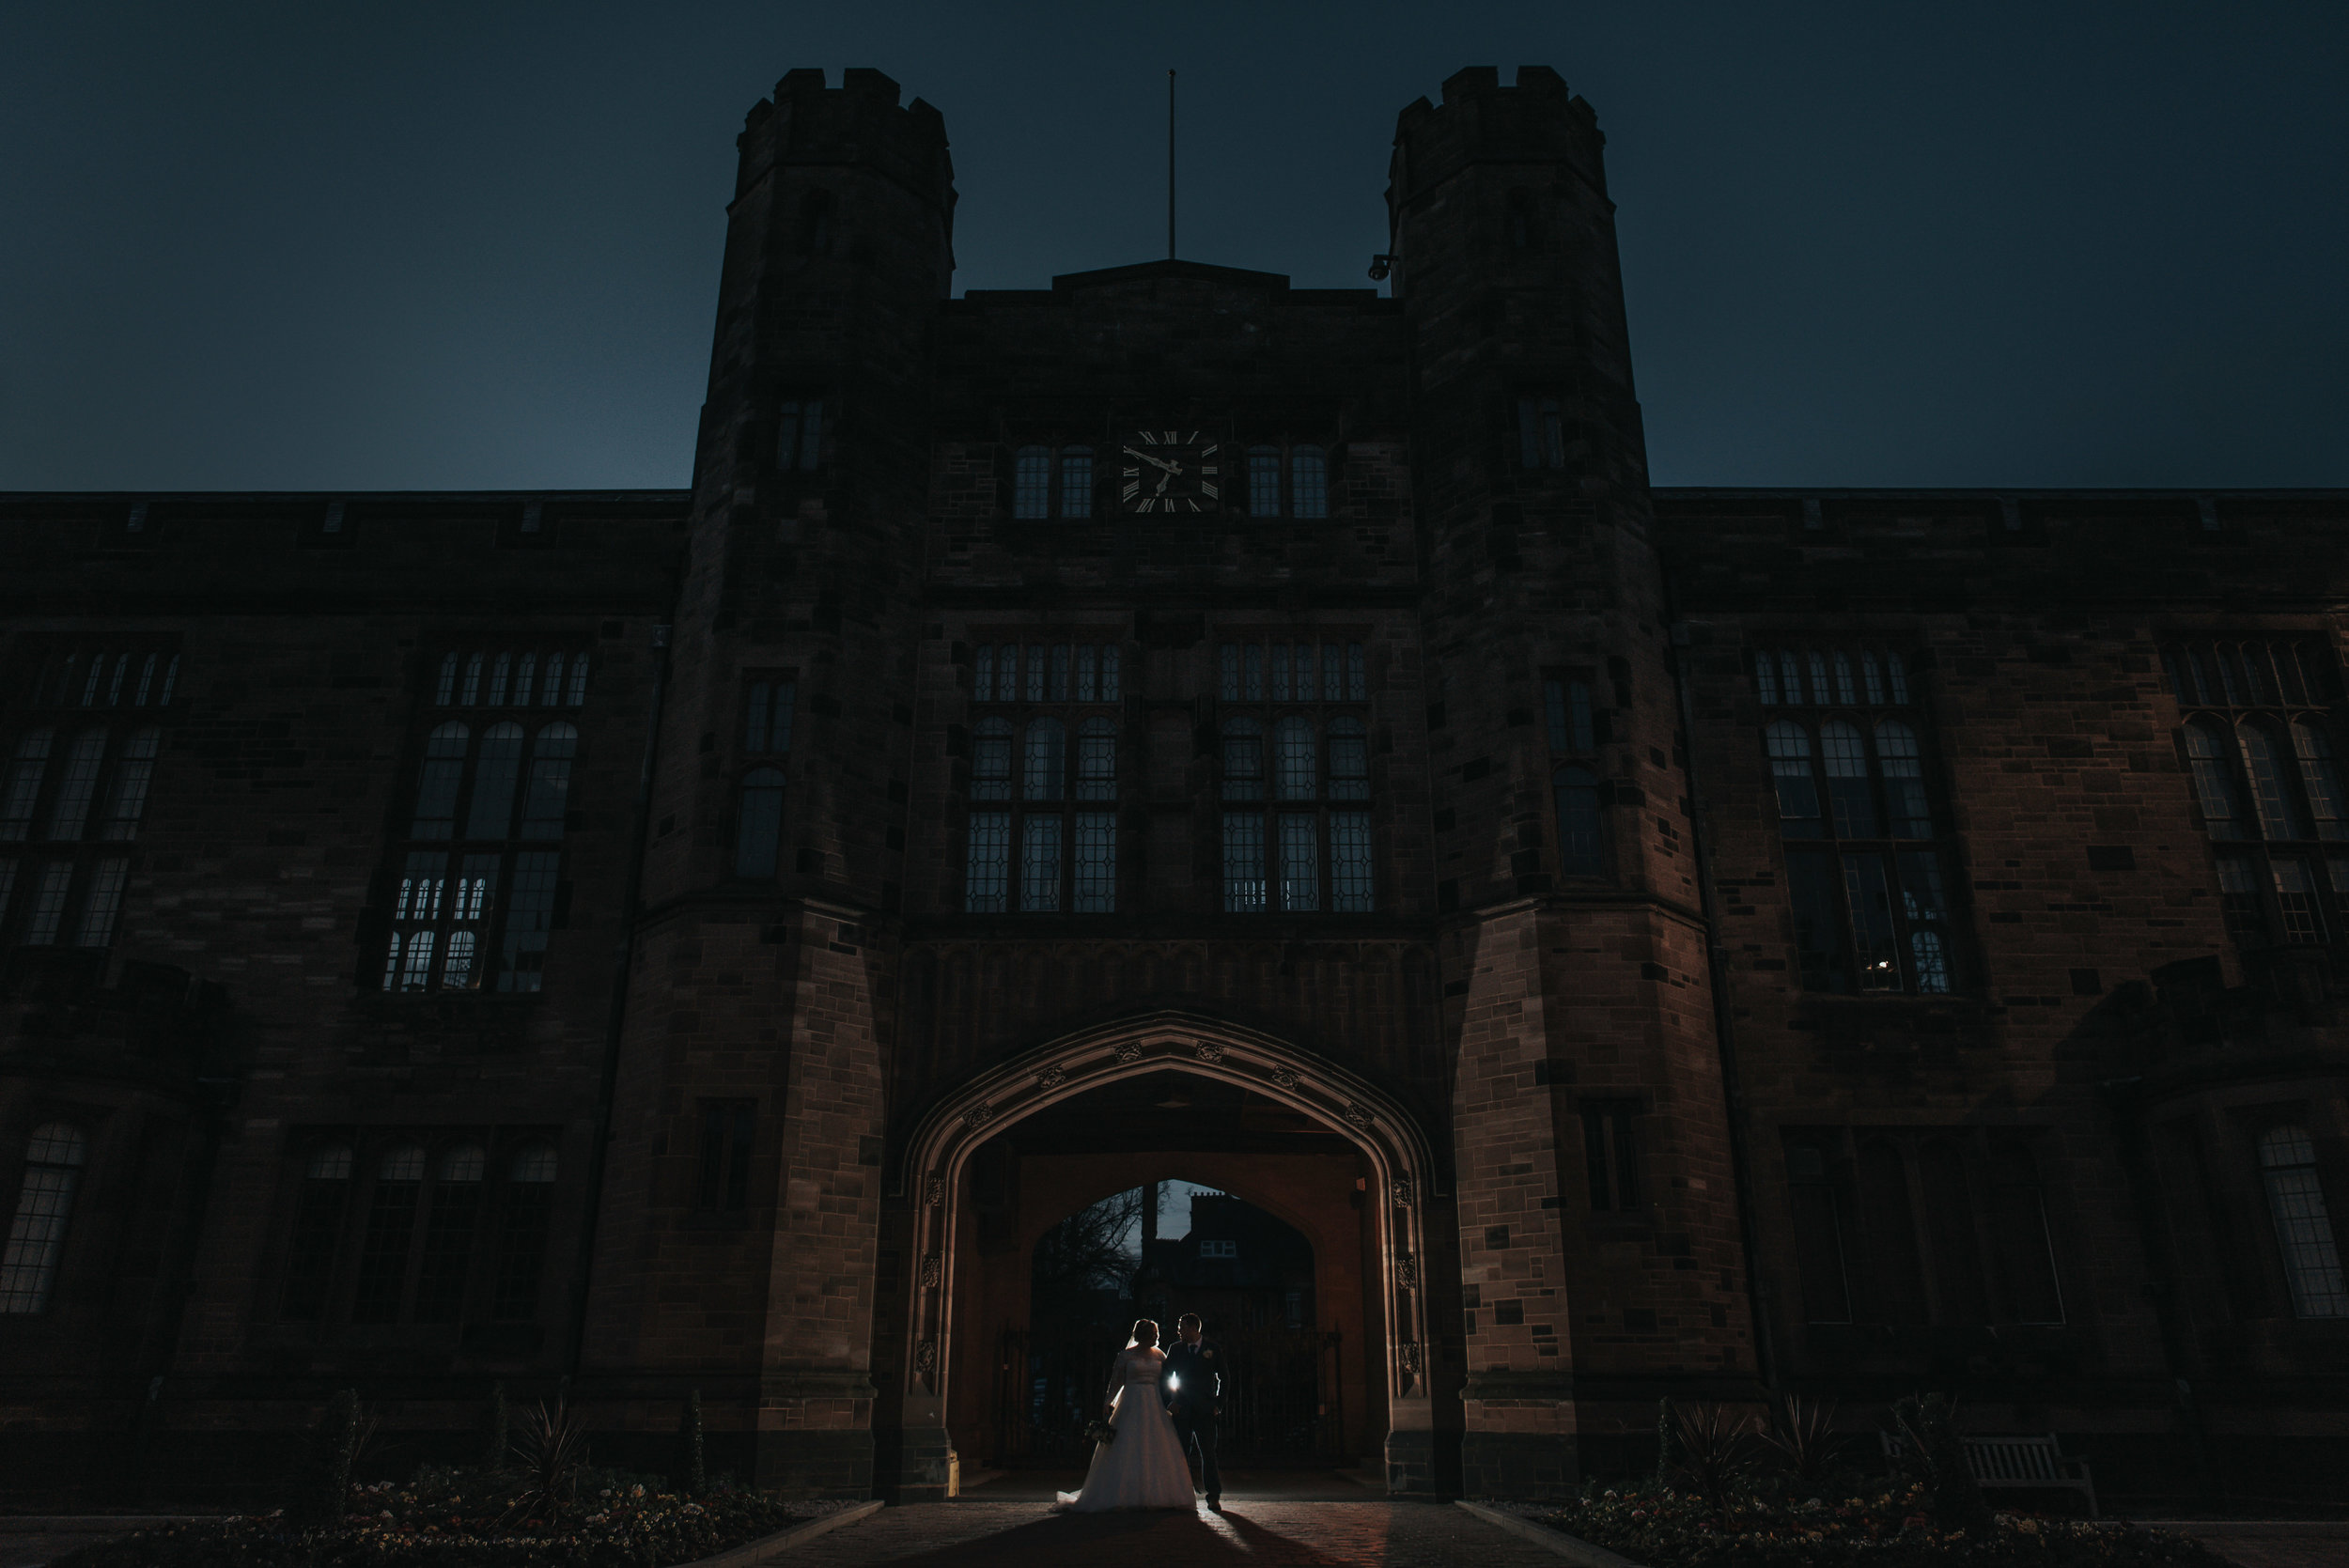 Bolton School Wedding Photographer based in lancashire and cheshire (2 of 2).jpg